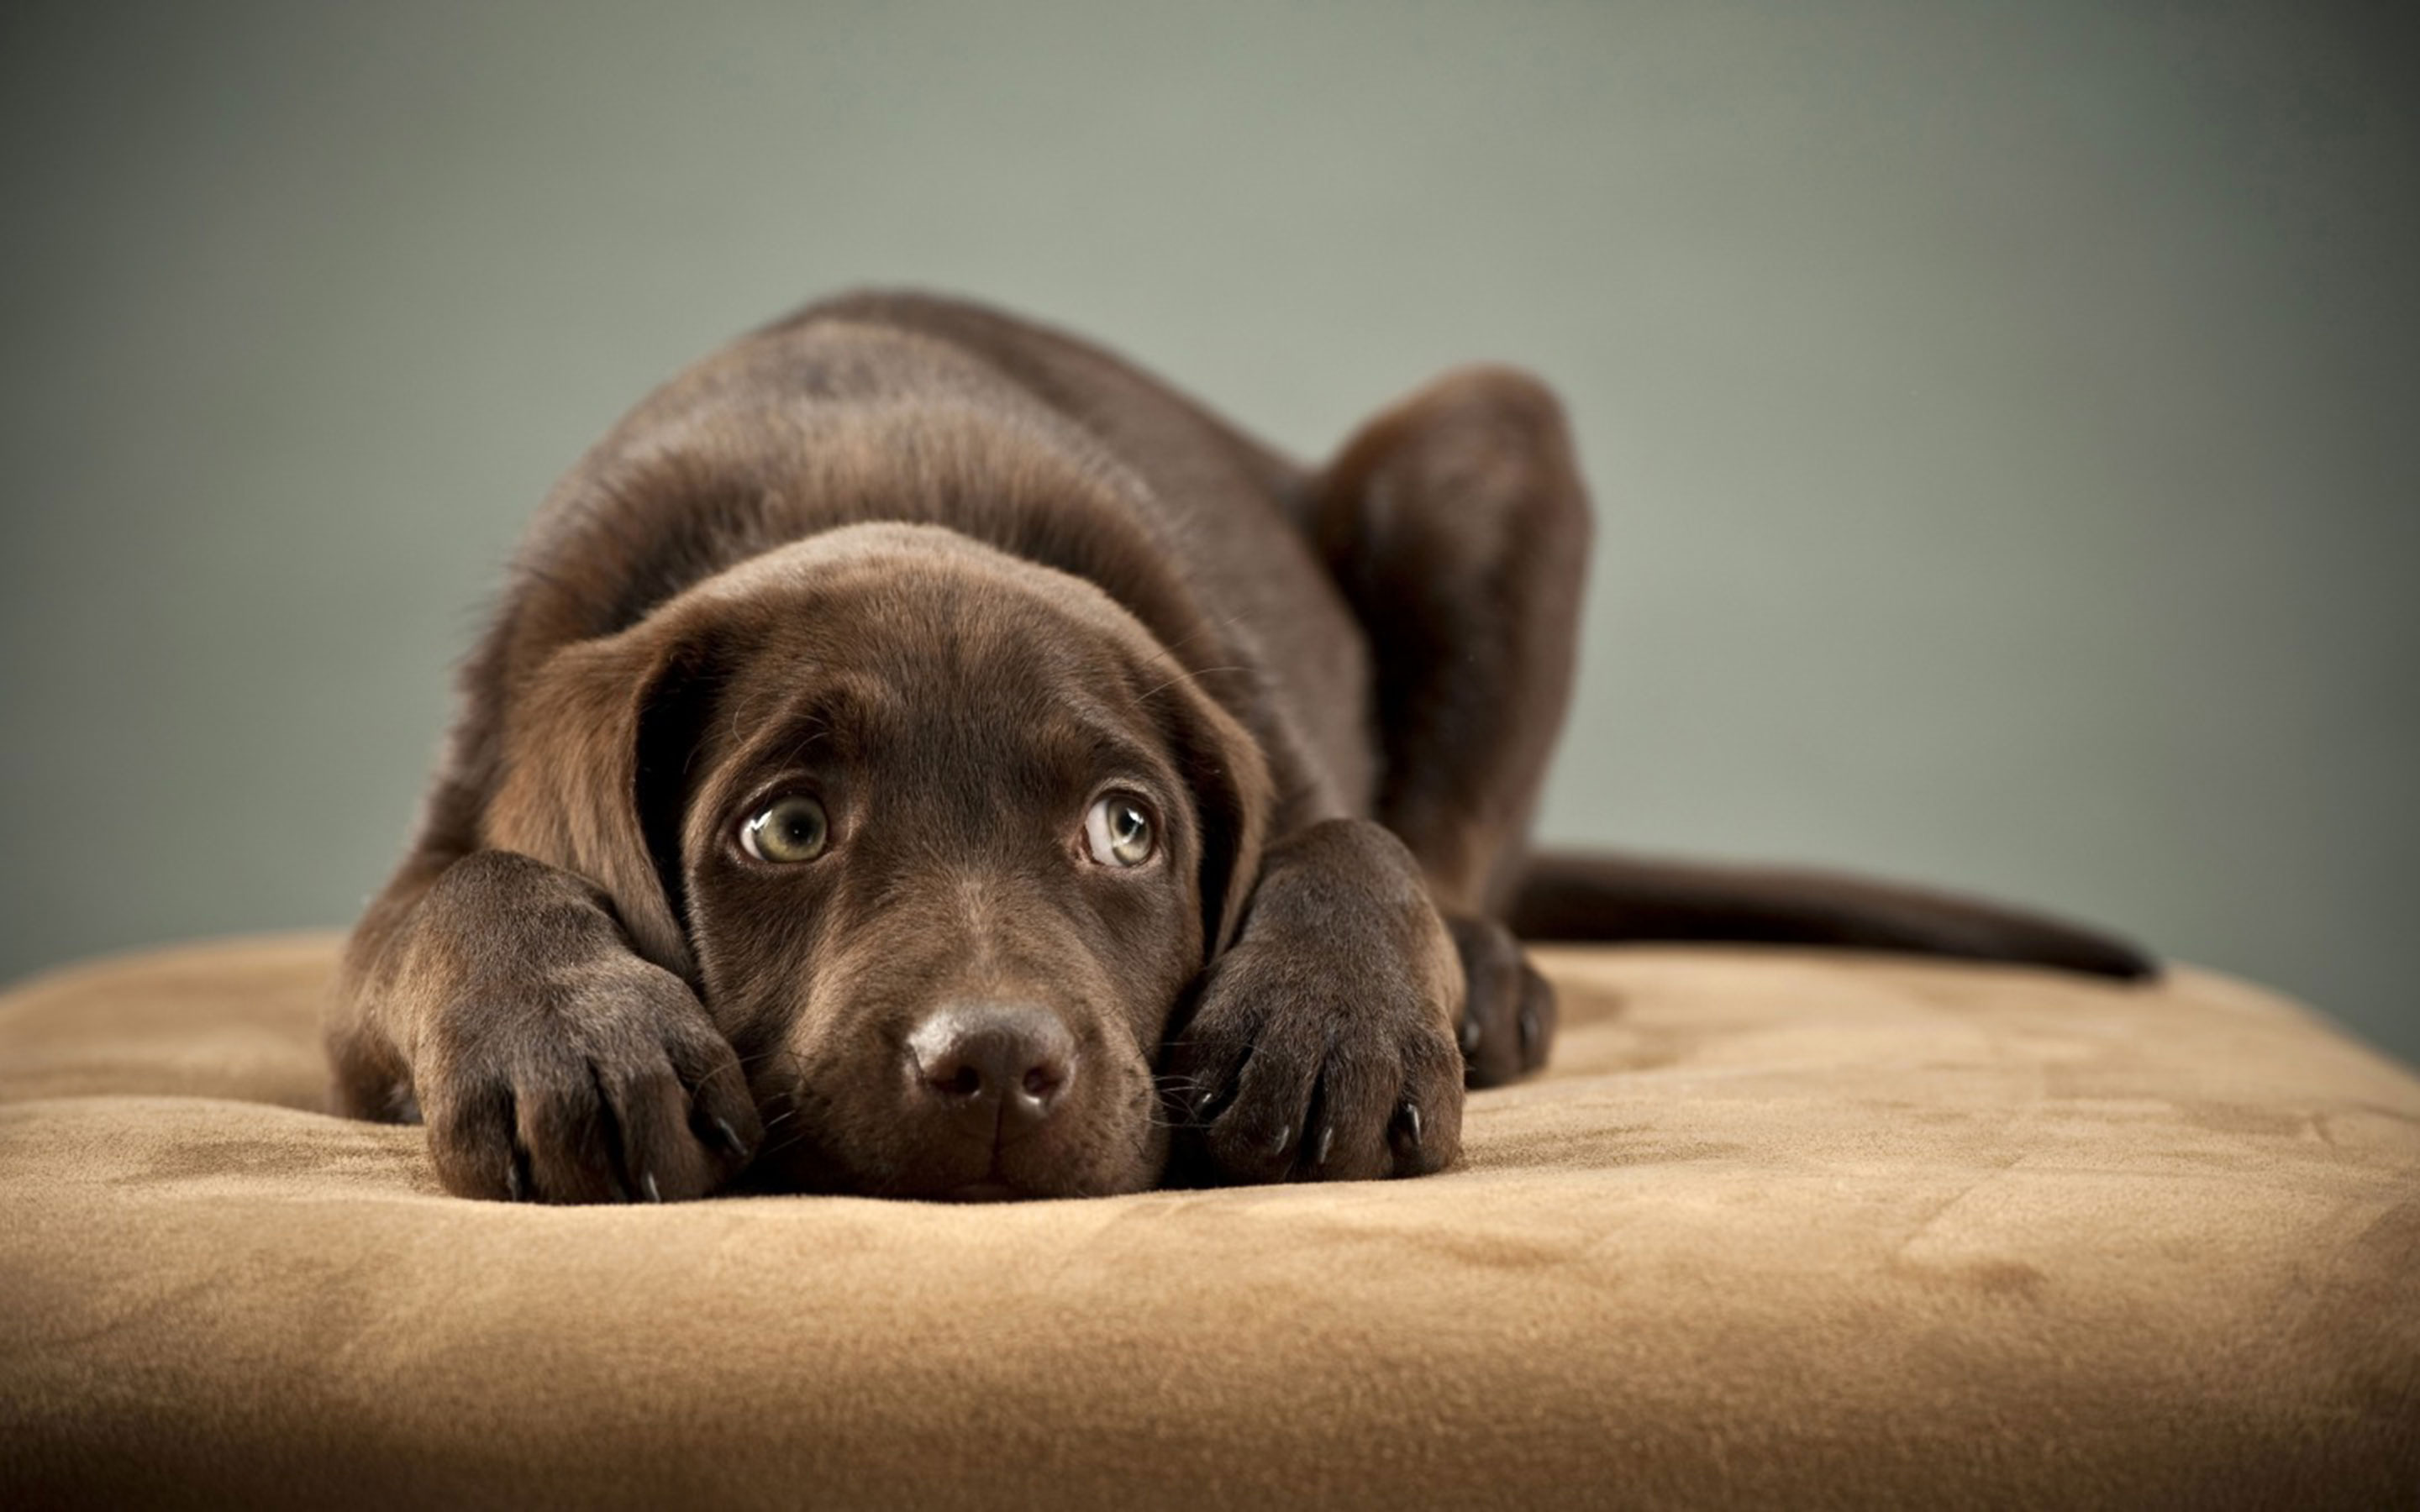 How do I know that my dog is sick or in pain? | FitBark